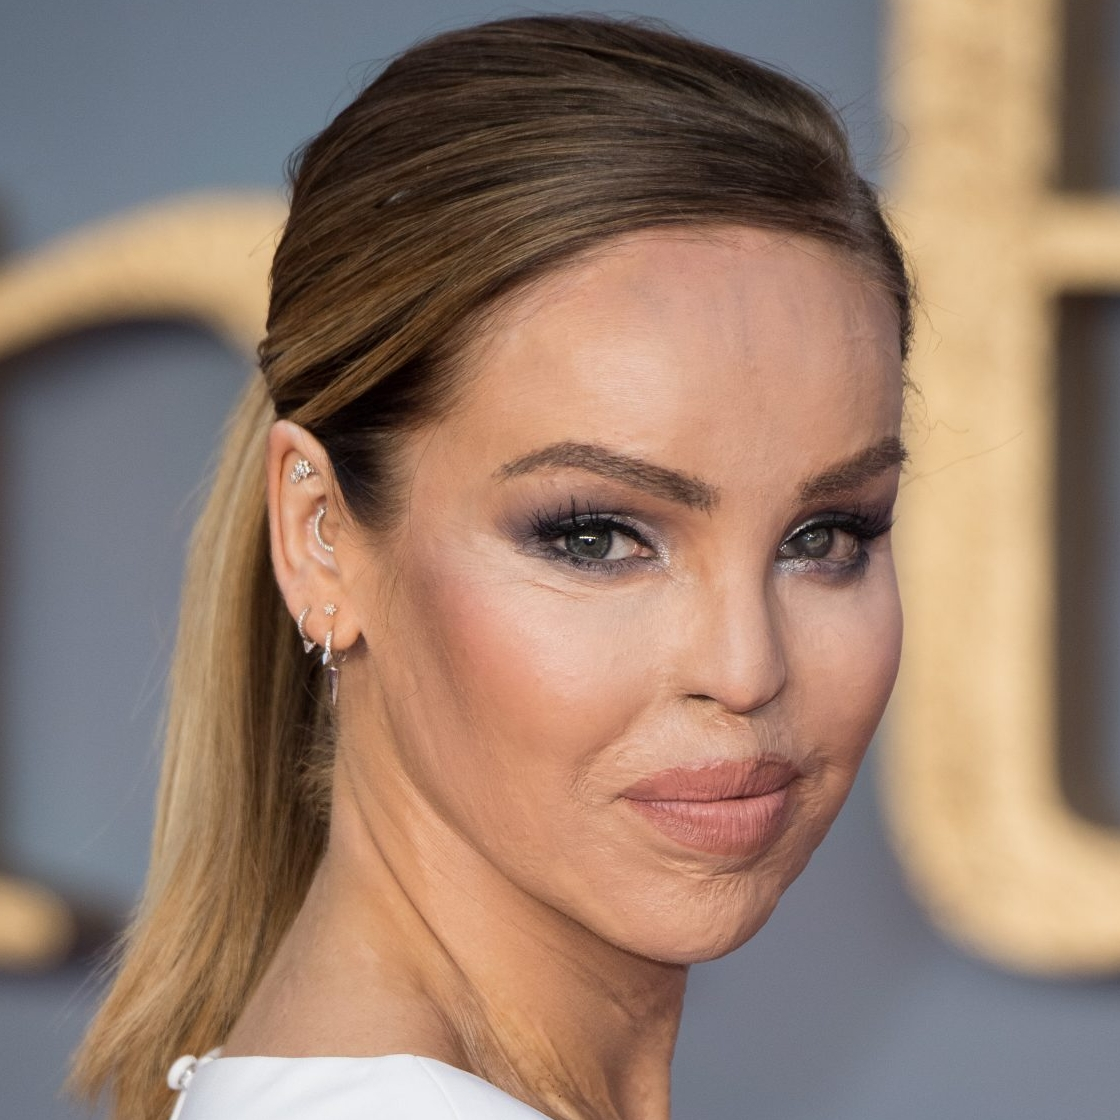 Katie Piper Shares Visible Hate Video